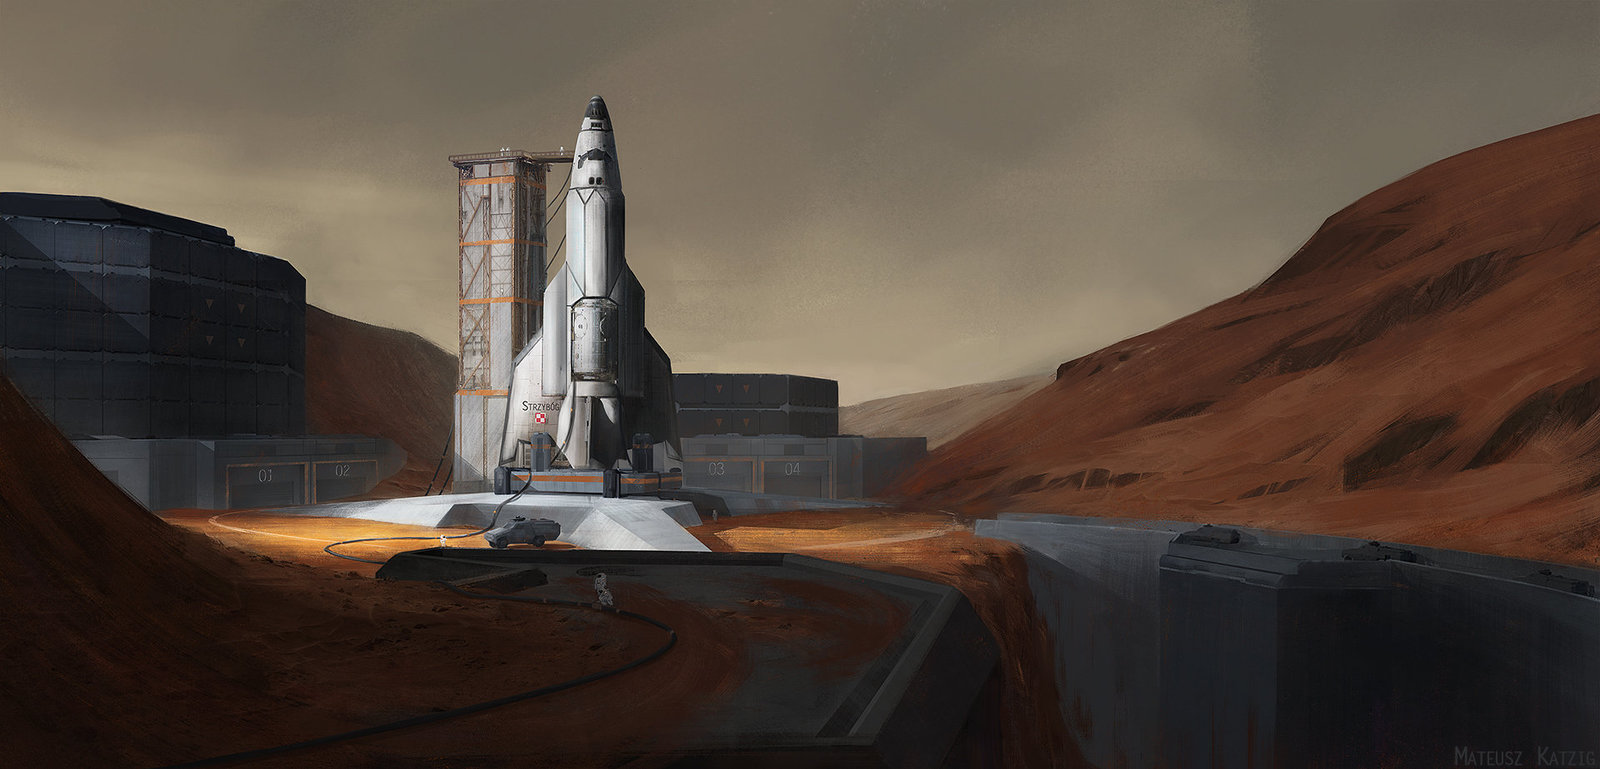 mars_launch_base_by_narholt-d92qx36